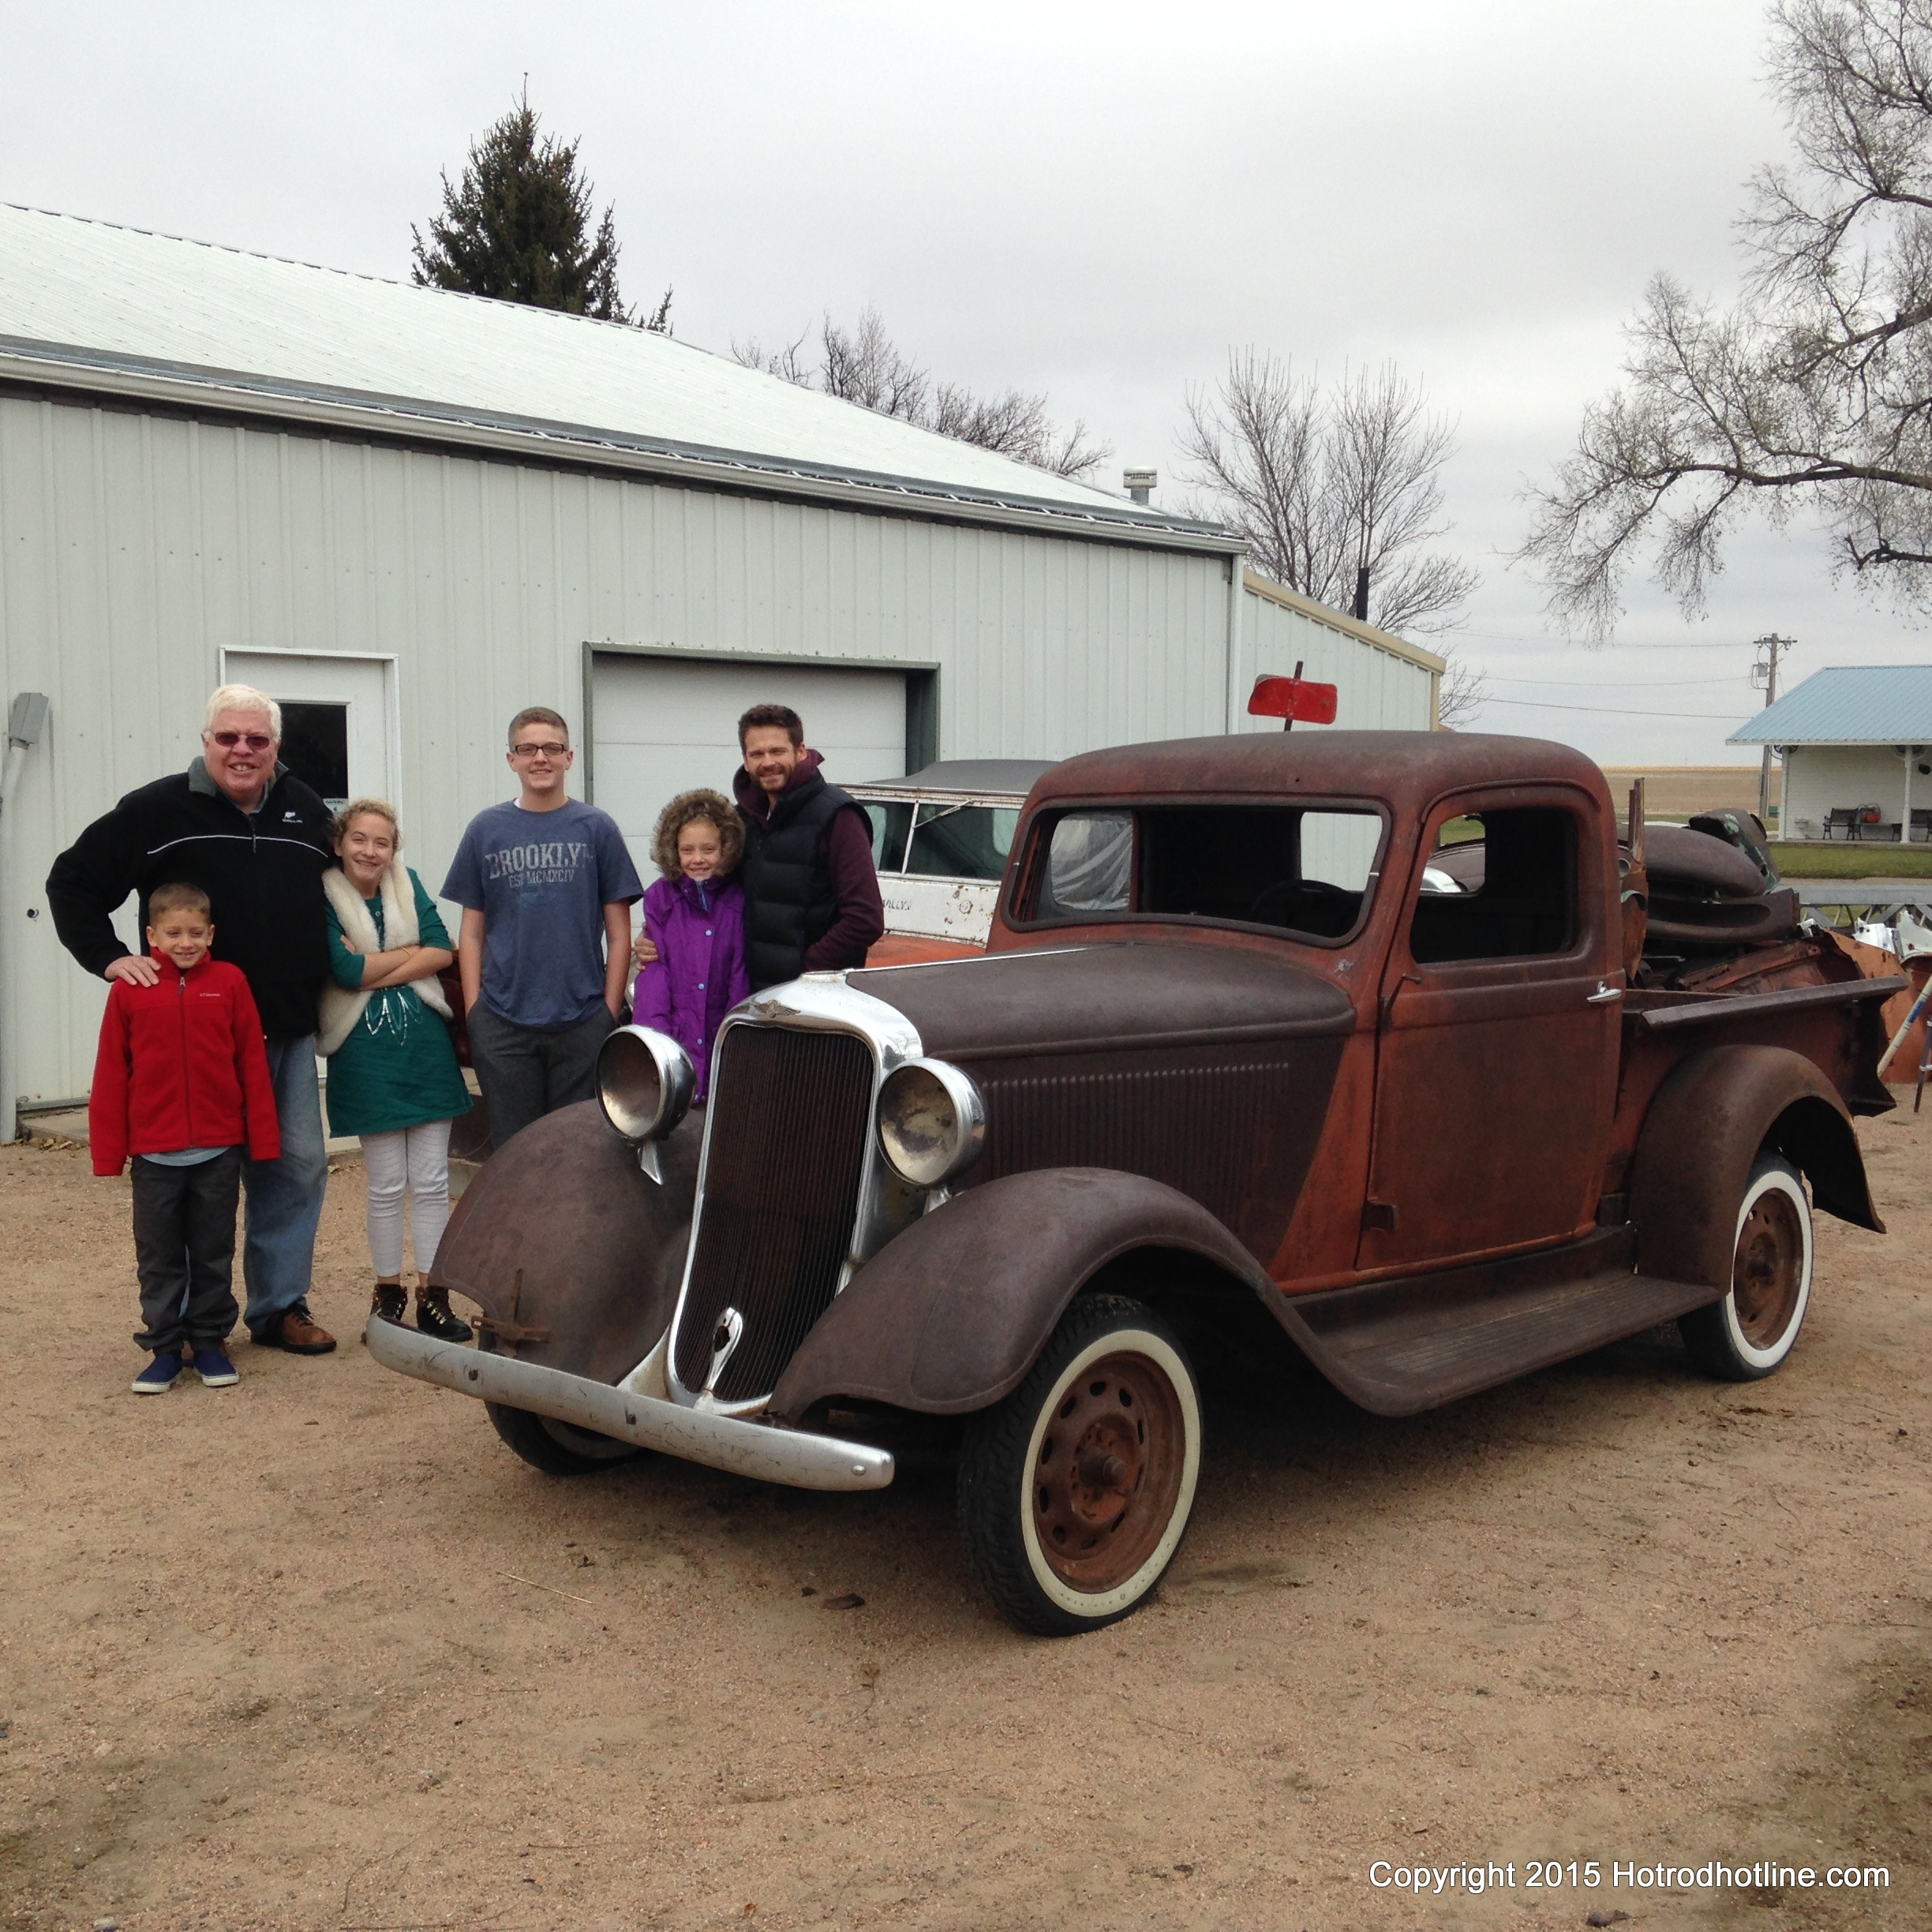 Don Holsinger's '35 Dodge Pickup